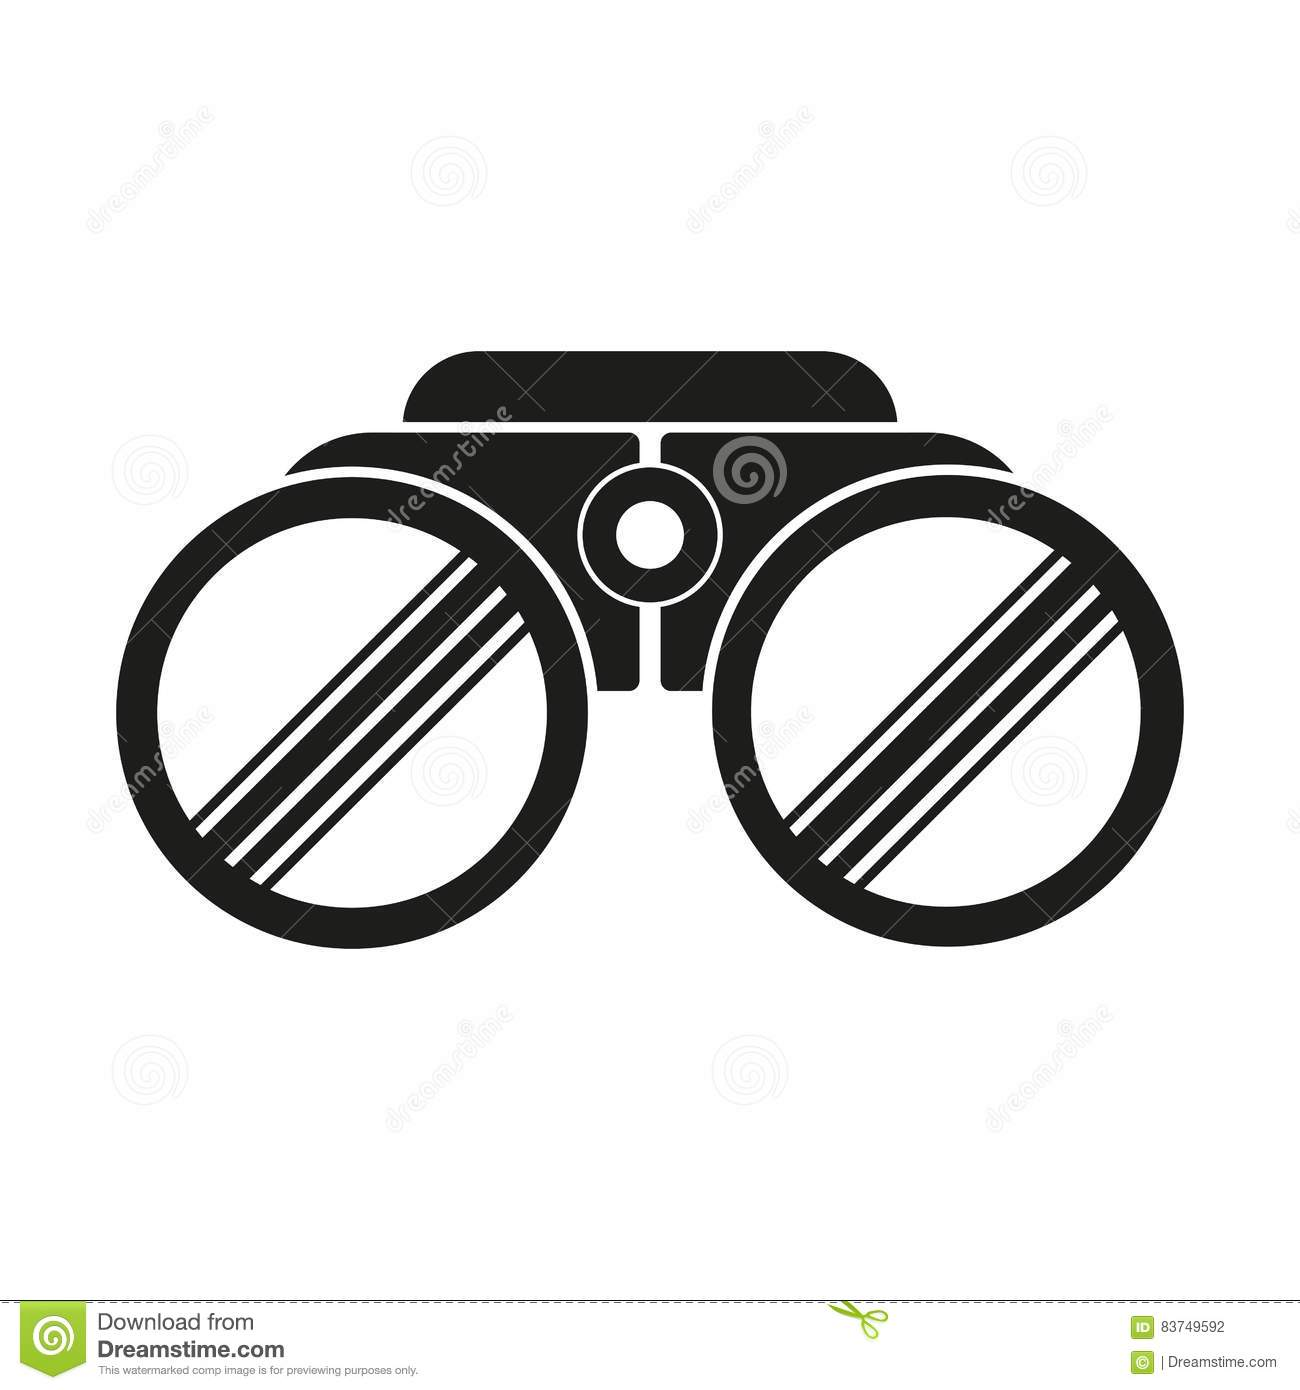 binoculars icon vector - photo #21